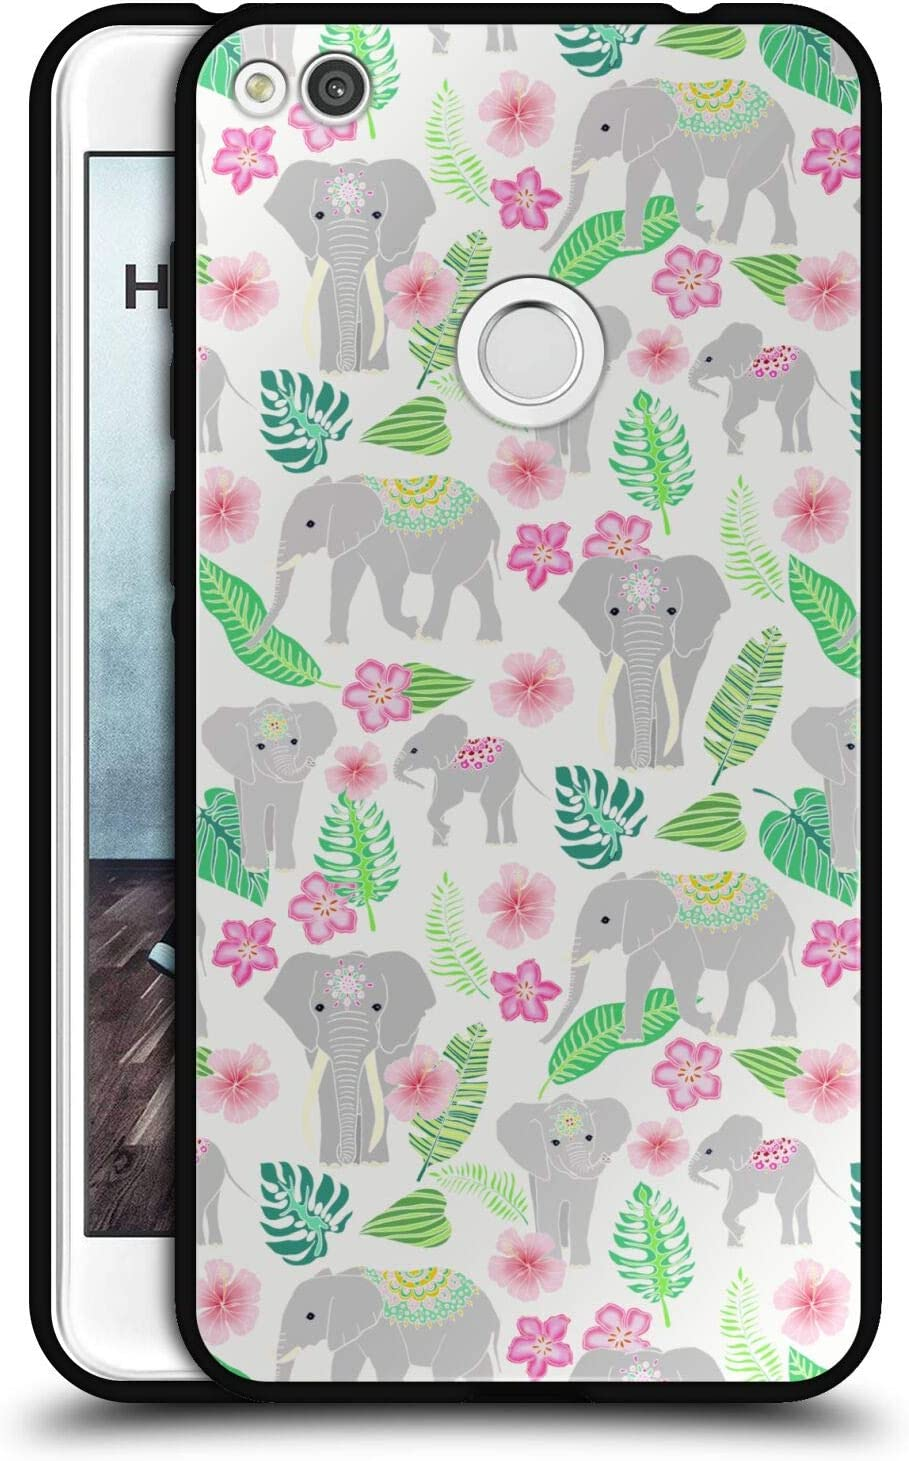 Head Case Designs Officially Licensed Tangerine-Tane Elephants Nature Art Black Hybrid Glass Back Case Compatible with Huawei P8 Lite (2017)